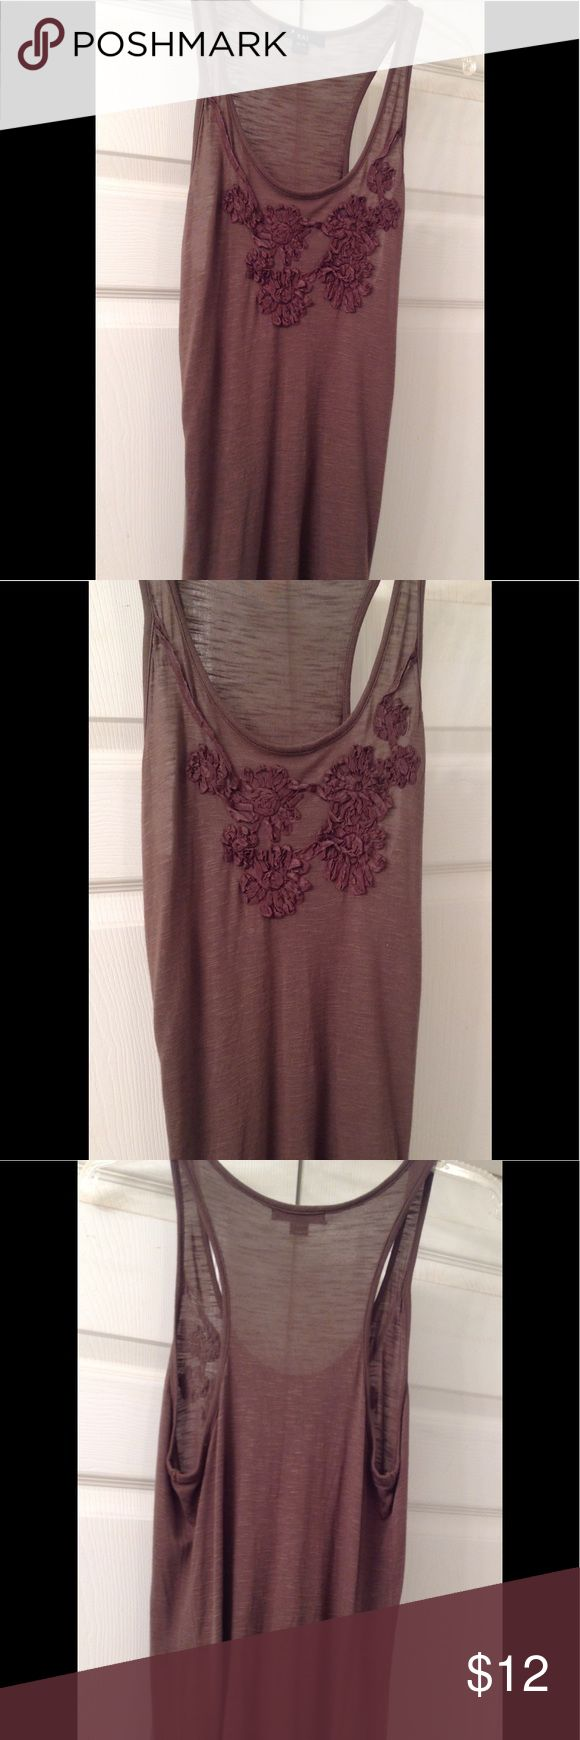 Embellished Racer Back Tank Forever XXI embellished racer back tank. Lightweight cotton tank with decorative ribbon  detail on front. Soft brown, hits at the hips. Cute with shorts, pants or skirts. Perfect for hot summer days. Looks new, excellent condition. Forever 21 Tops